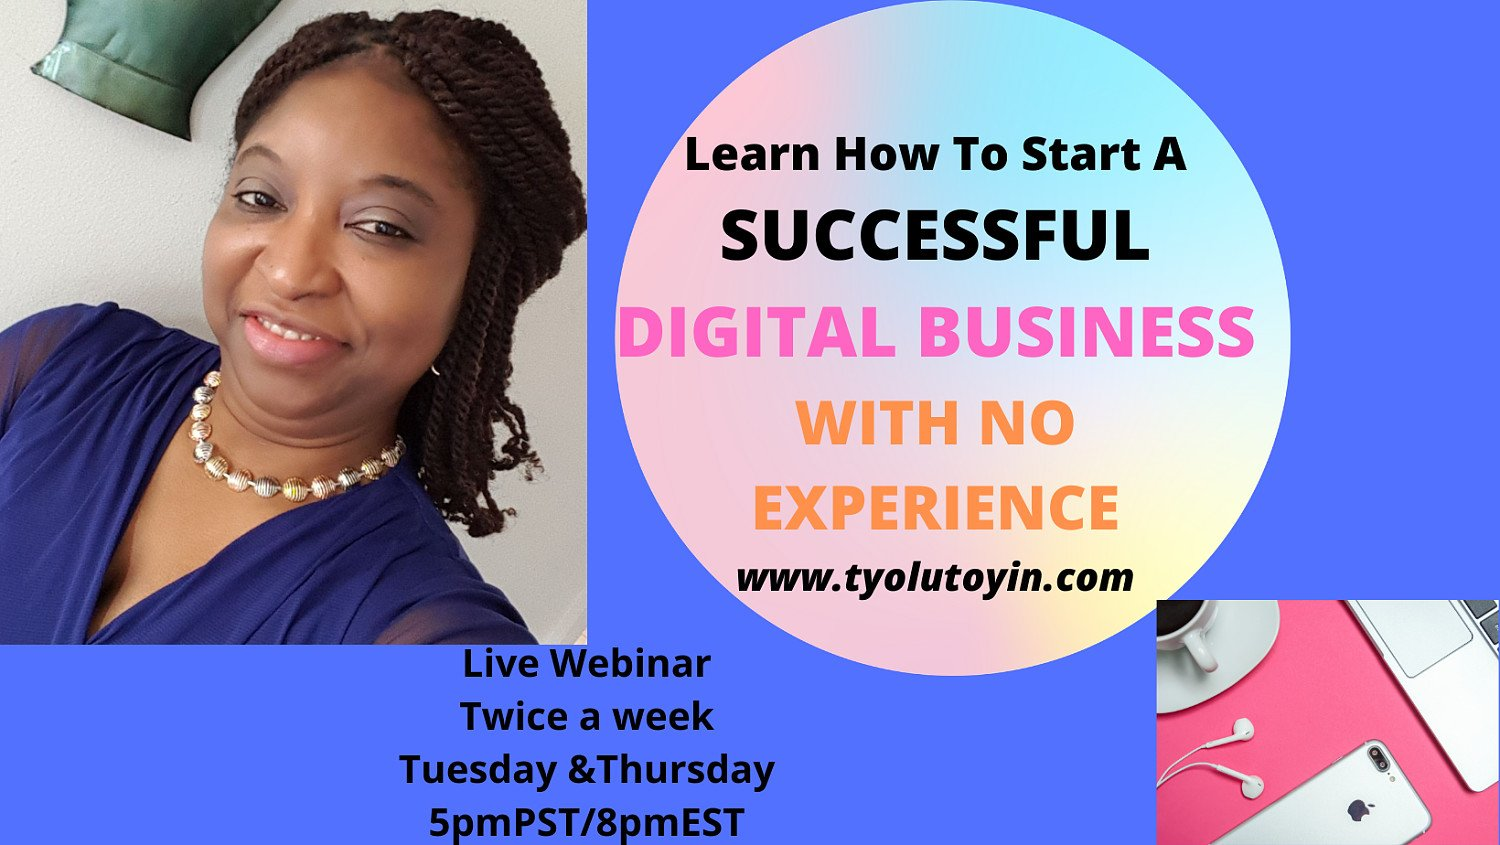 Free Live Webinar To Watch: How To Start A Successful Online Business